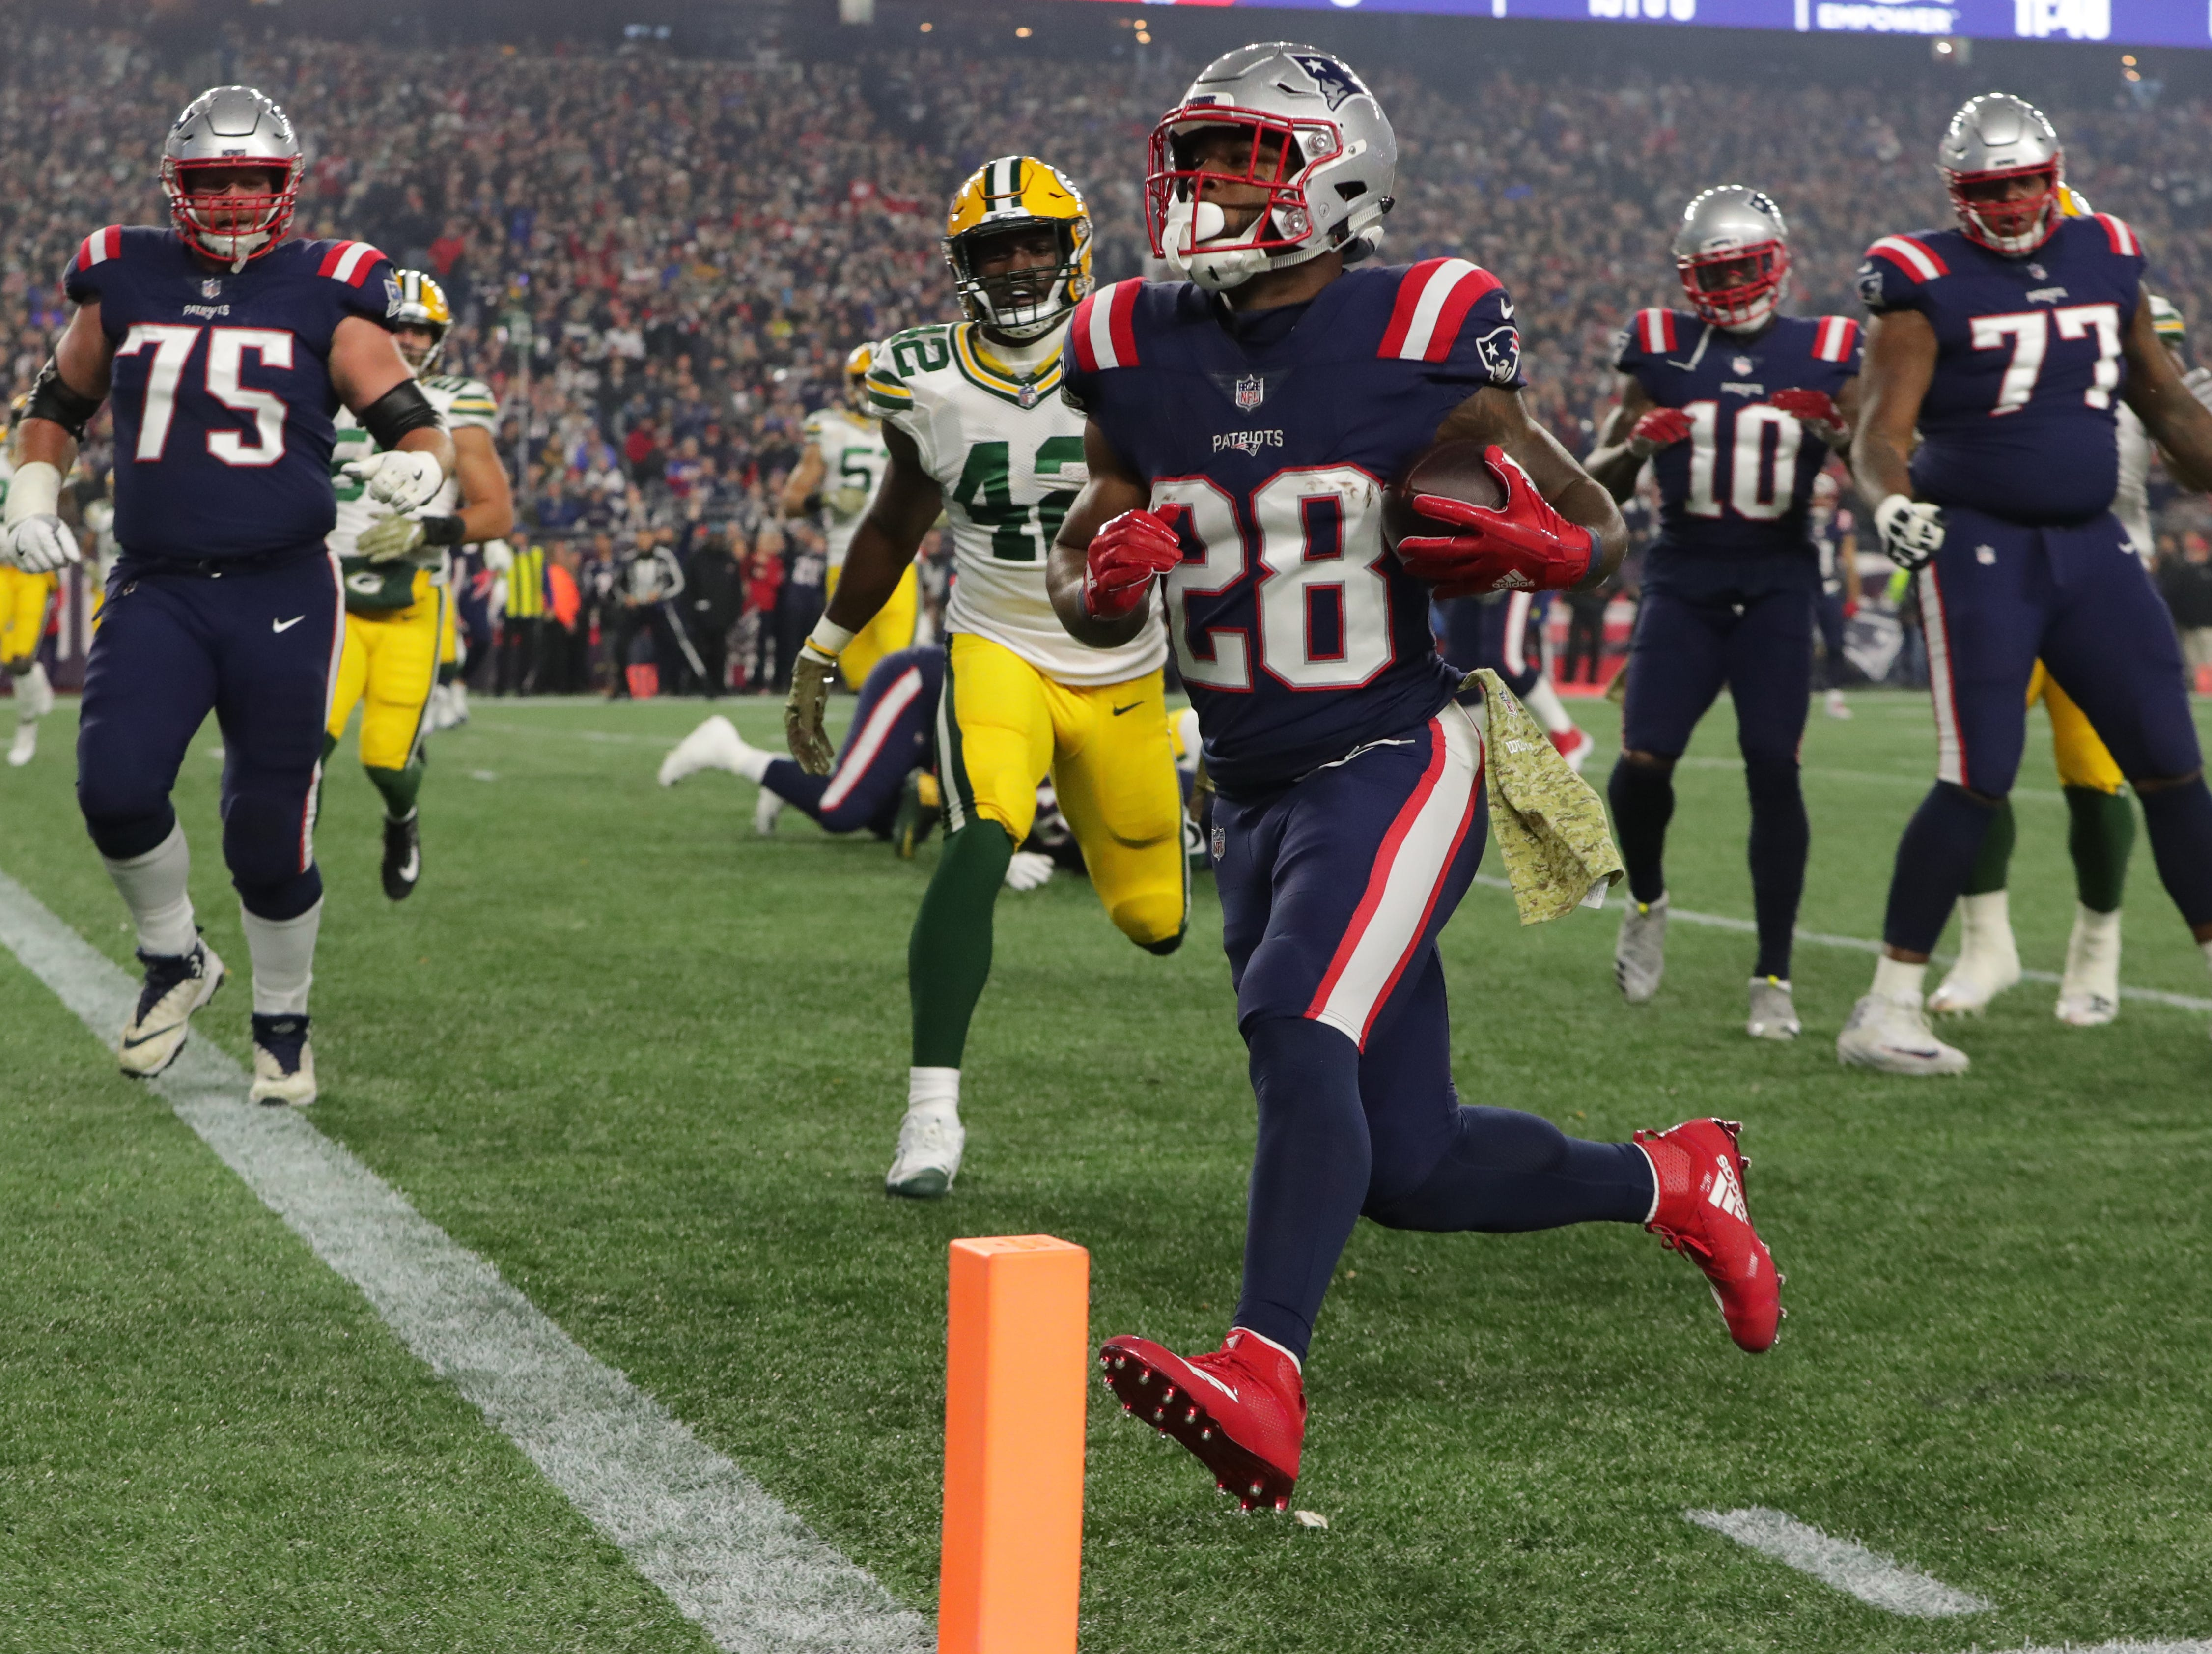 New England Patriots running back James White (28) runs eight yard for a touchdown during the first quarter of their game against the Green Bay Packers Sunday, November 4, 2018 at Gillette Stadium in Foxborough, Mass.